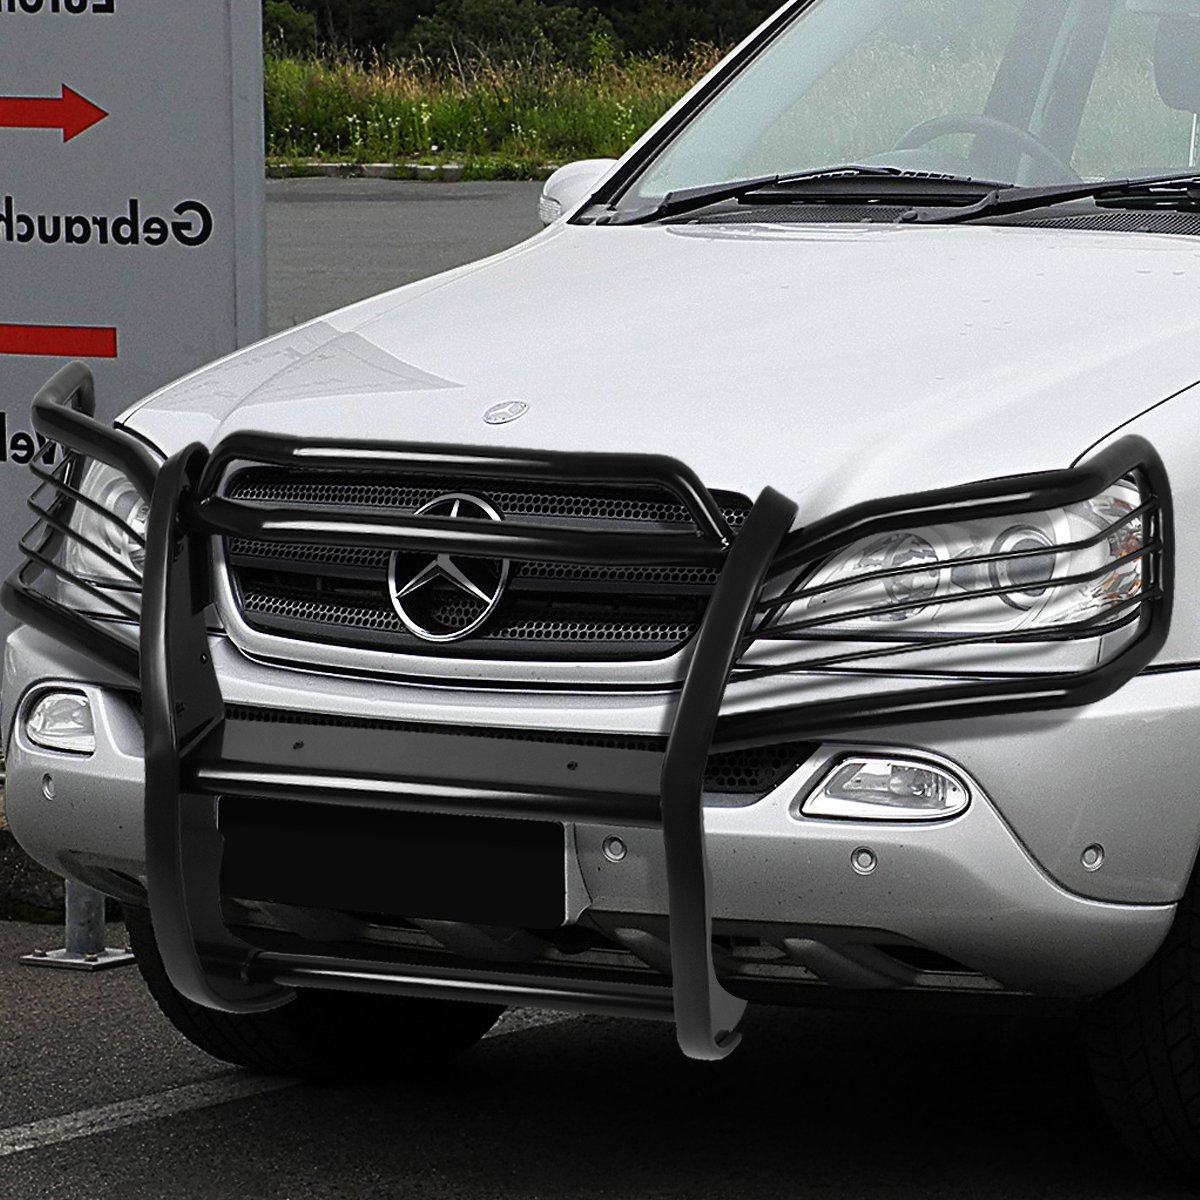 98 05 mercedes benz w163 m class front bumper protector for Mercedes benz s guard for sale